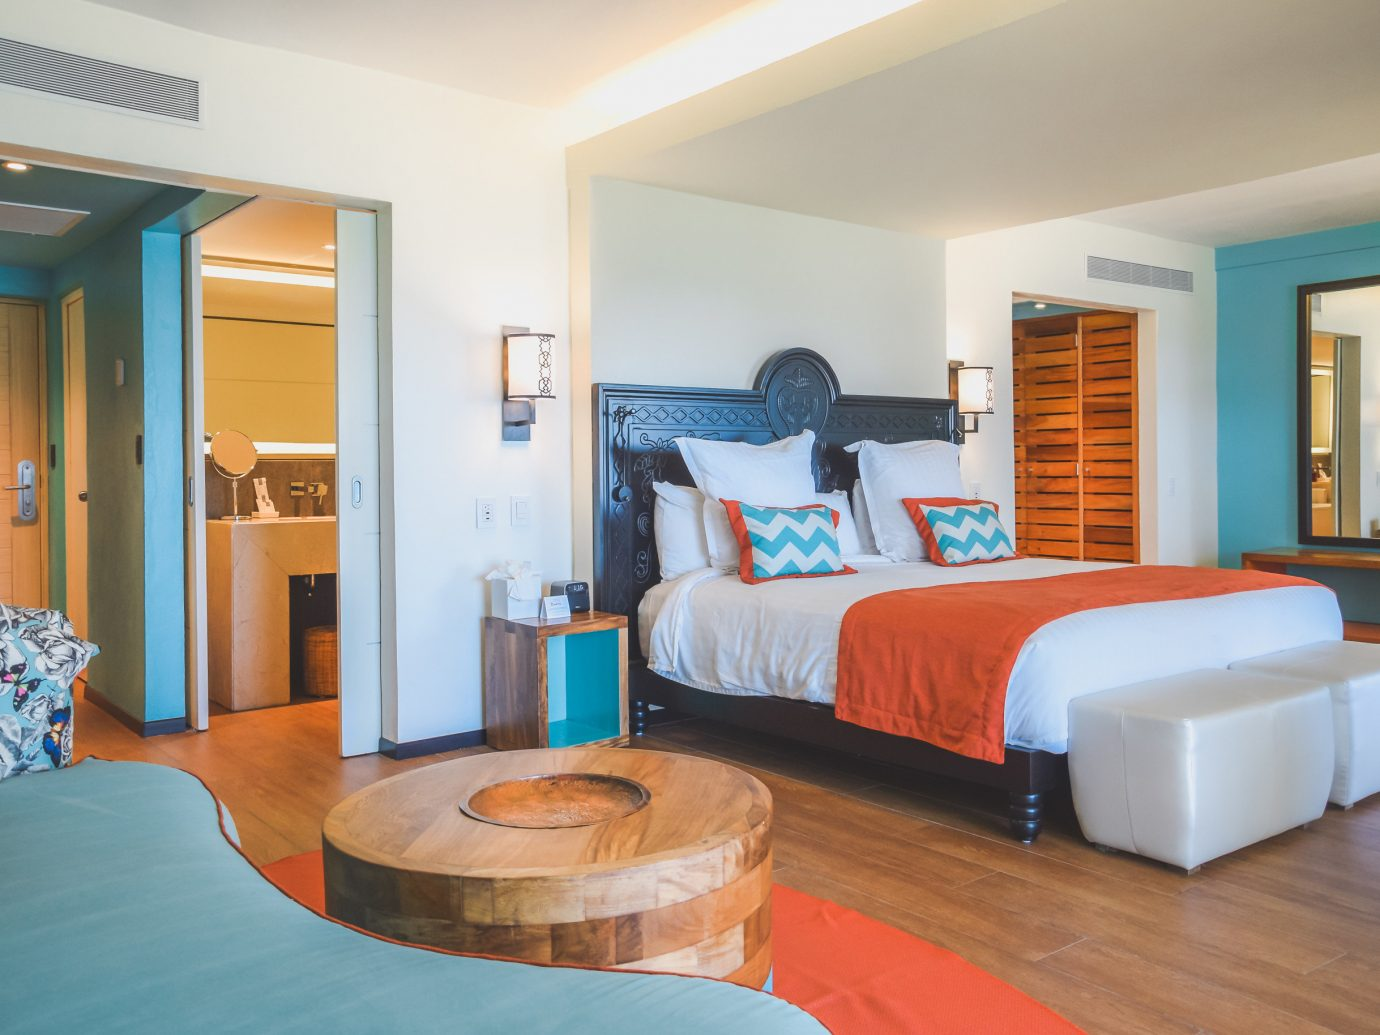 All-Inclusive Resorts caribbean Family Travel Hotels indoor wall ceiling floor room sofa Living Suite Bedroom interior design real estate furniture hotel estate bed boarding house bed sheet wood flat decorated